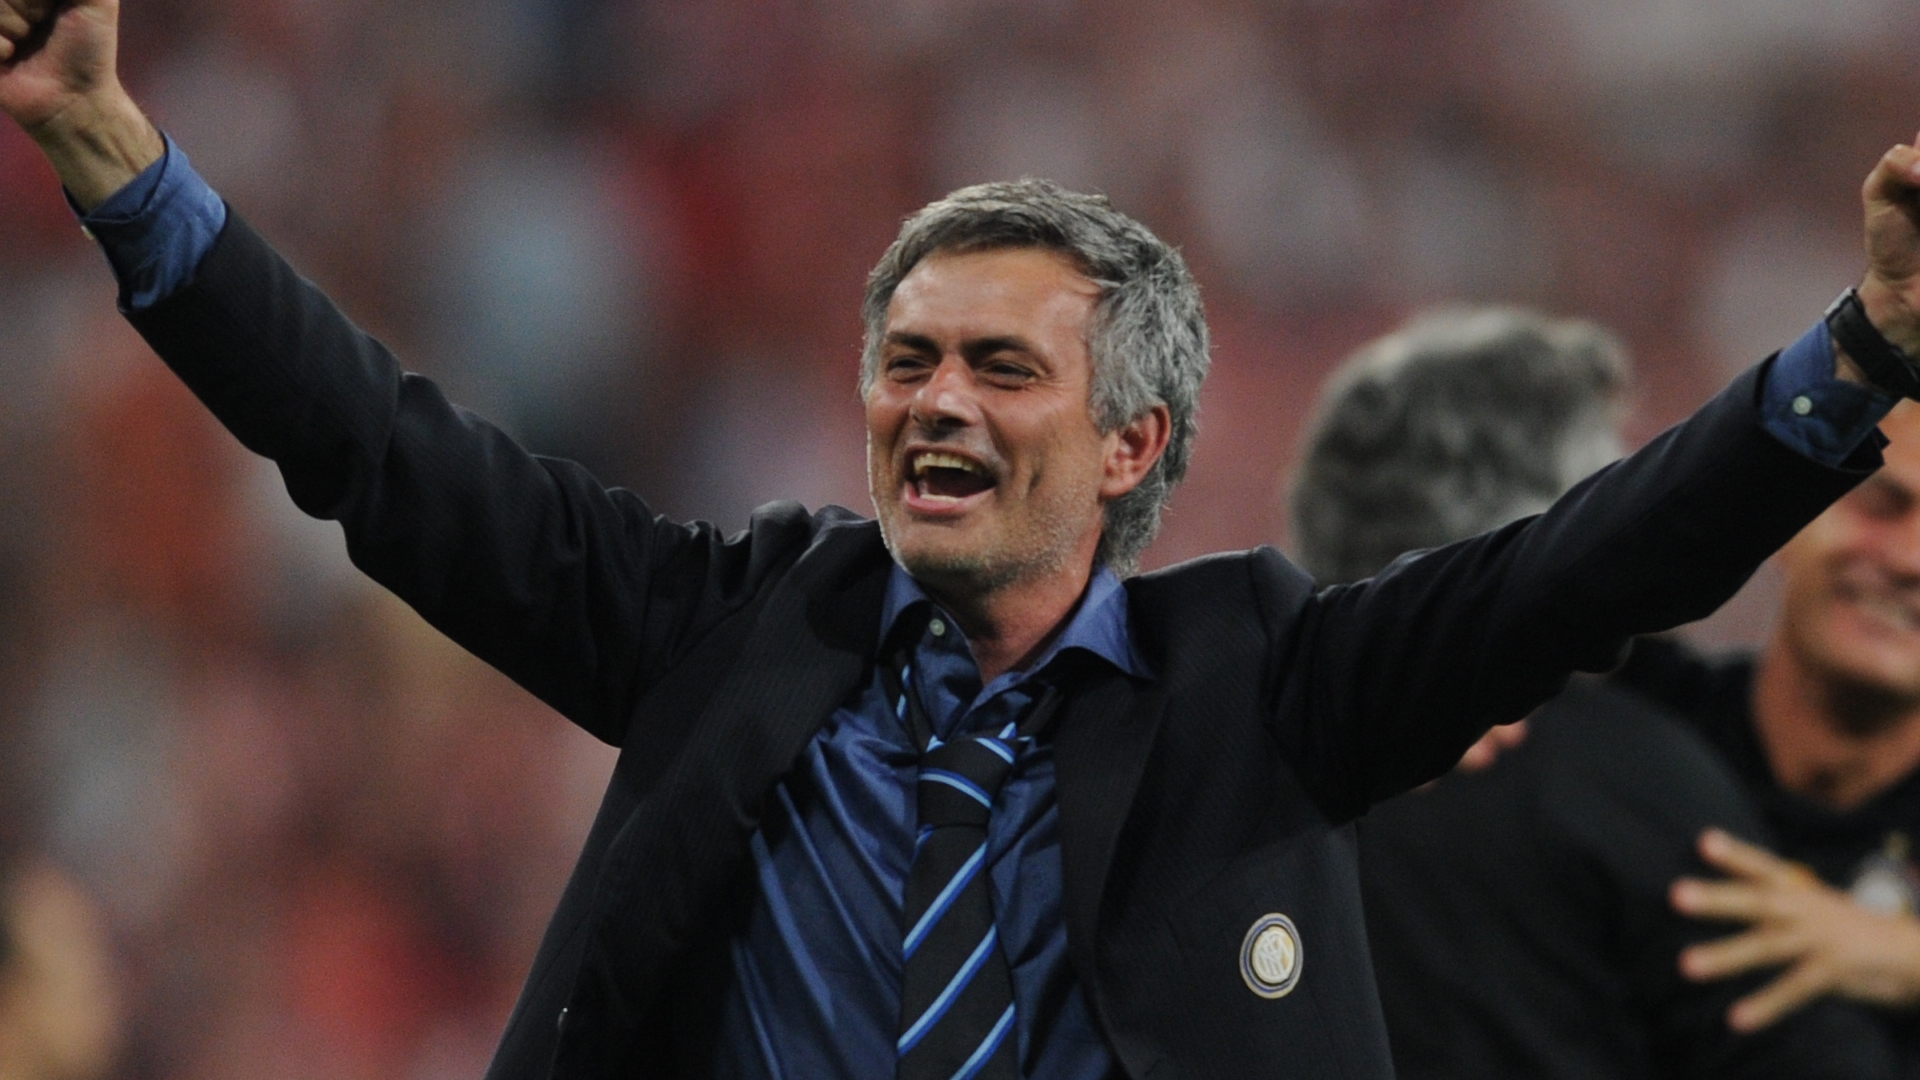 Mourinho: 'I could write a thousand-page book on Inter, with many forbidden stories' - Bóng Đá